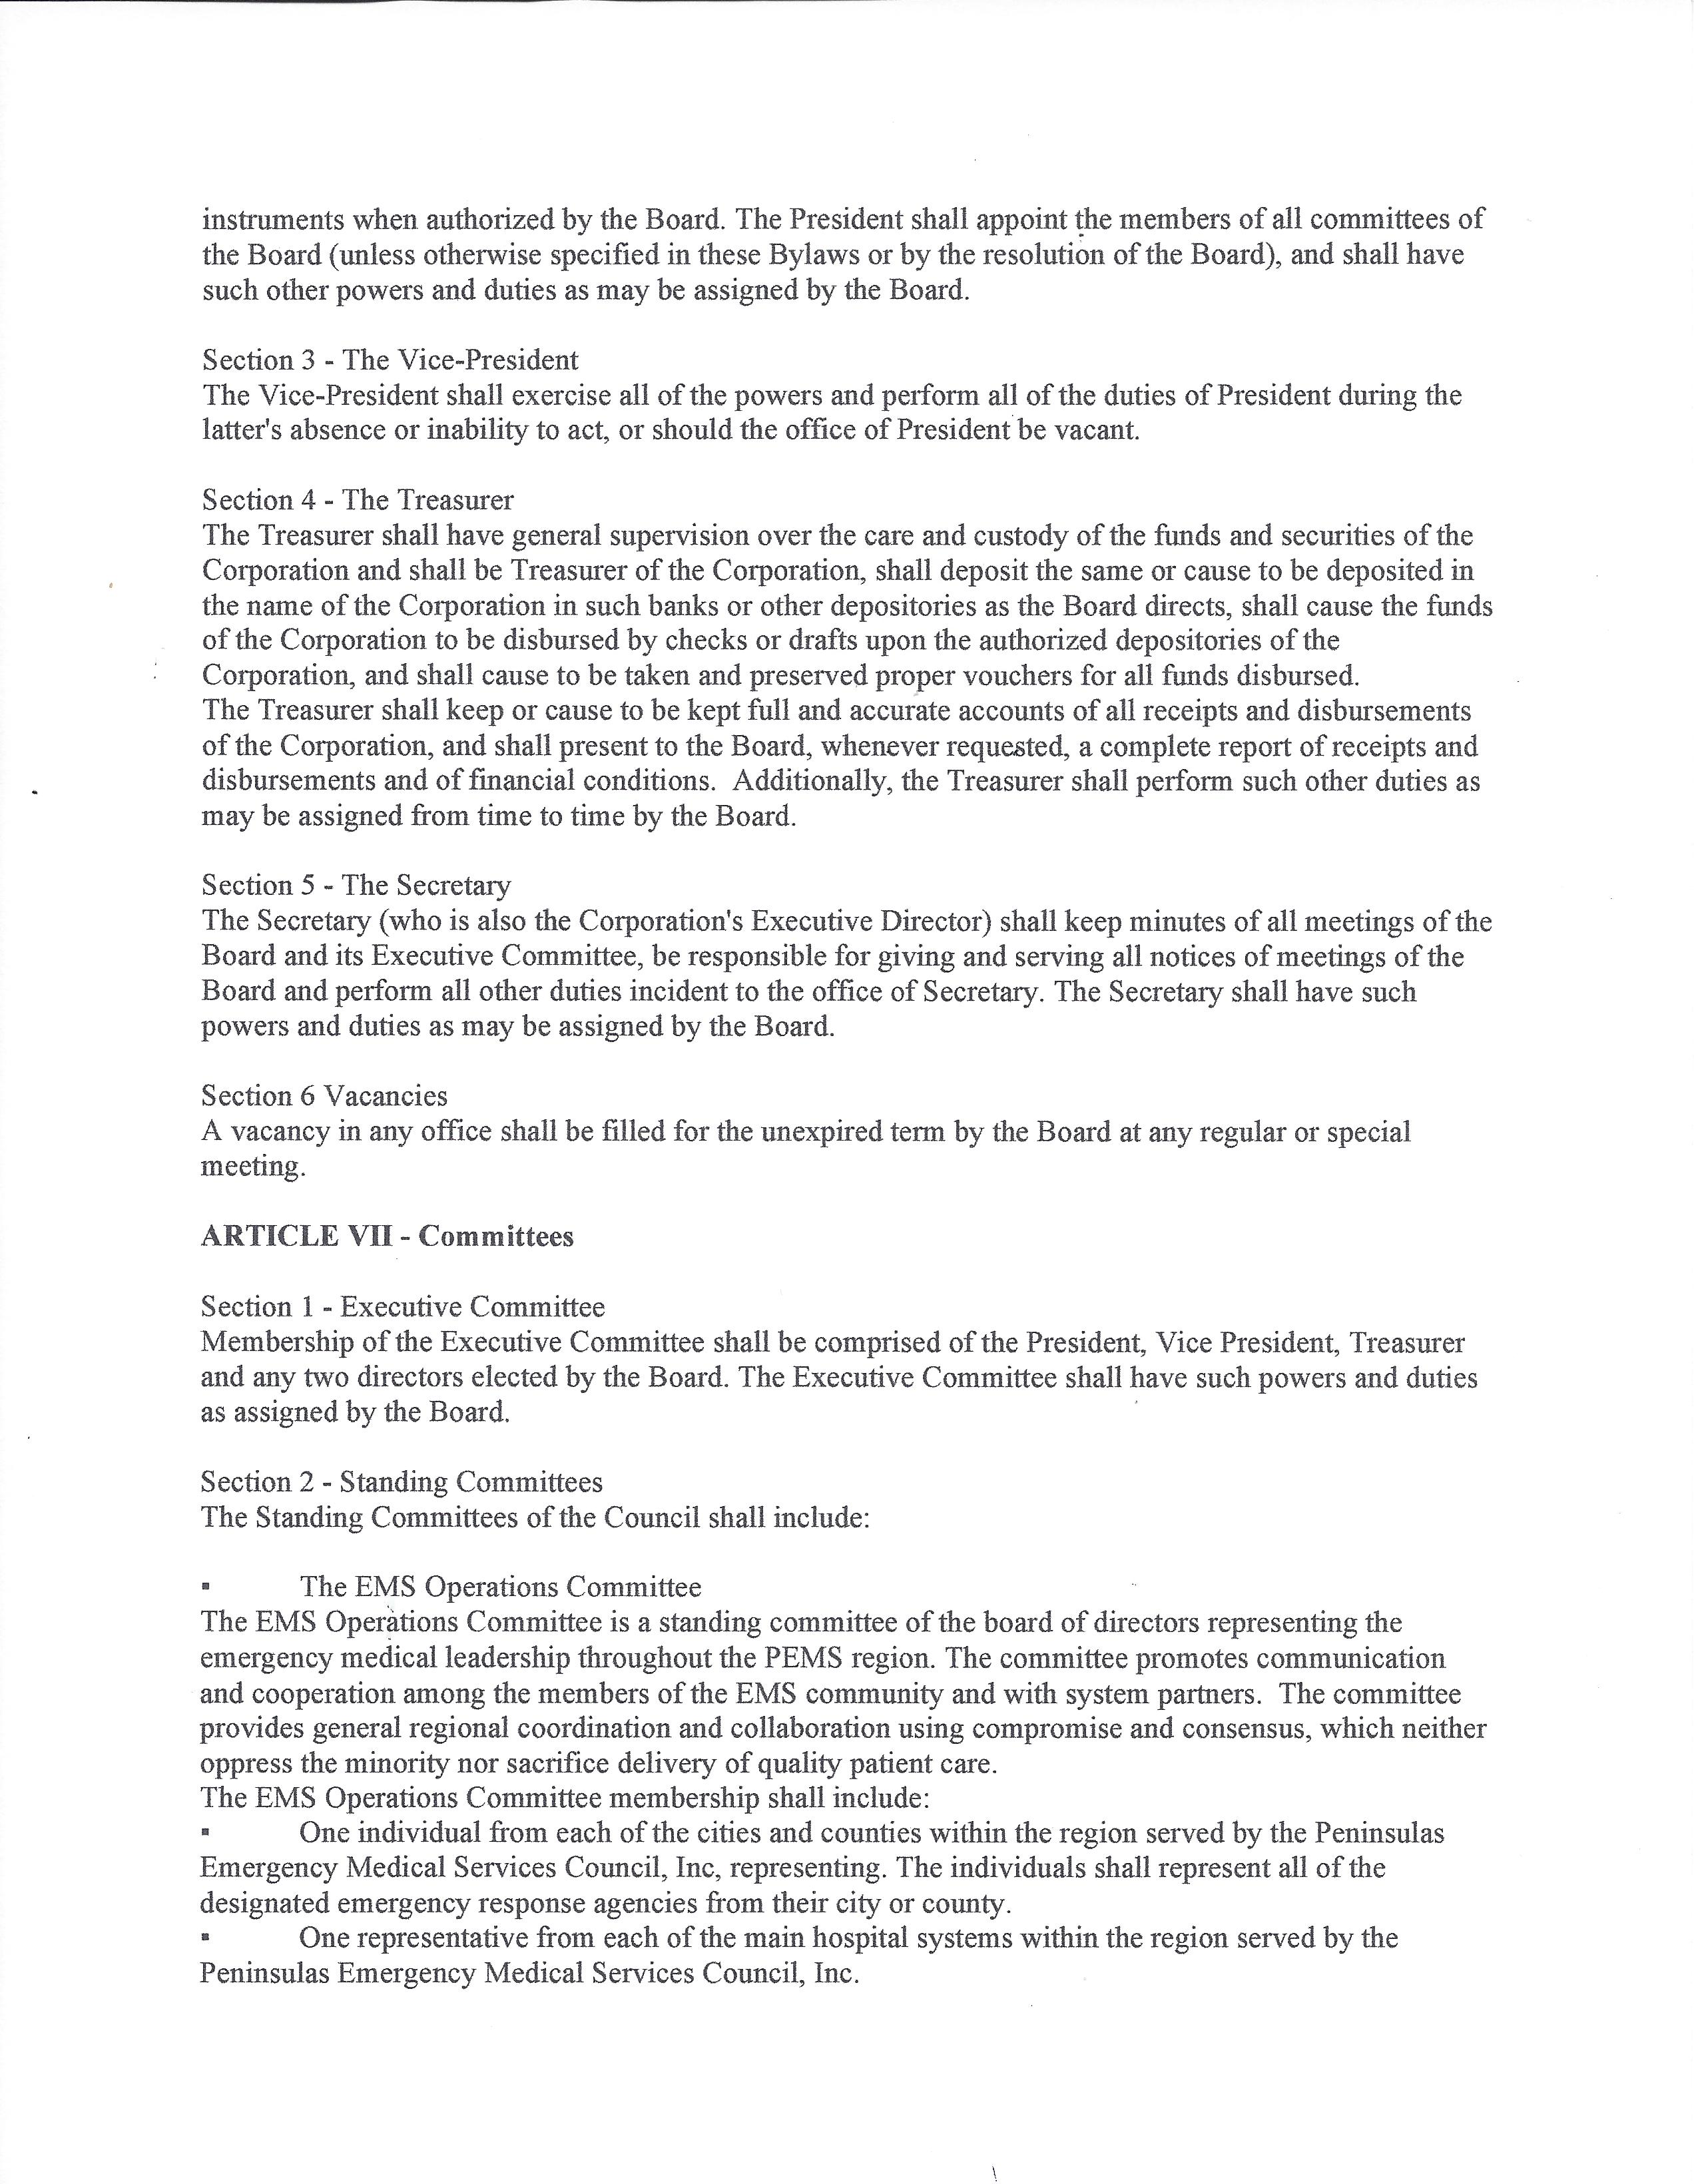 PEMS Council Inc. Bylaws 06 21 17 Page 04